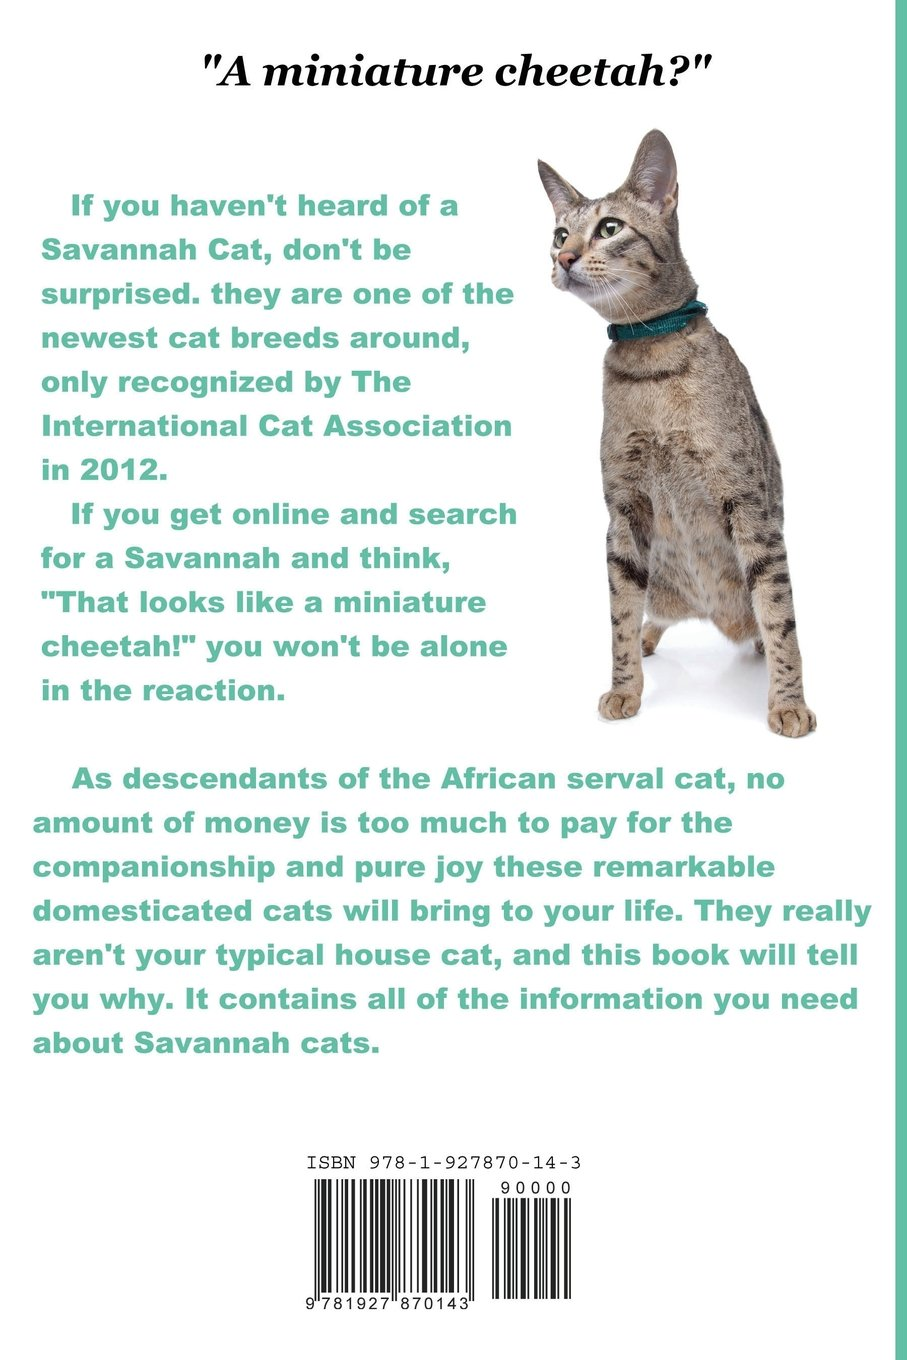 Savannah Cats and Kittens: Complete Owner's Guide to Savannah Cat & Kitten Care: Personality, temperament, breeding, training, health, diet, life expectancy, buying, cost, and more facts